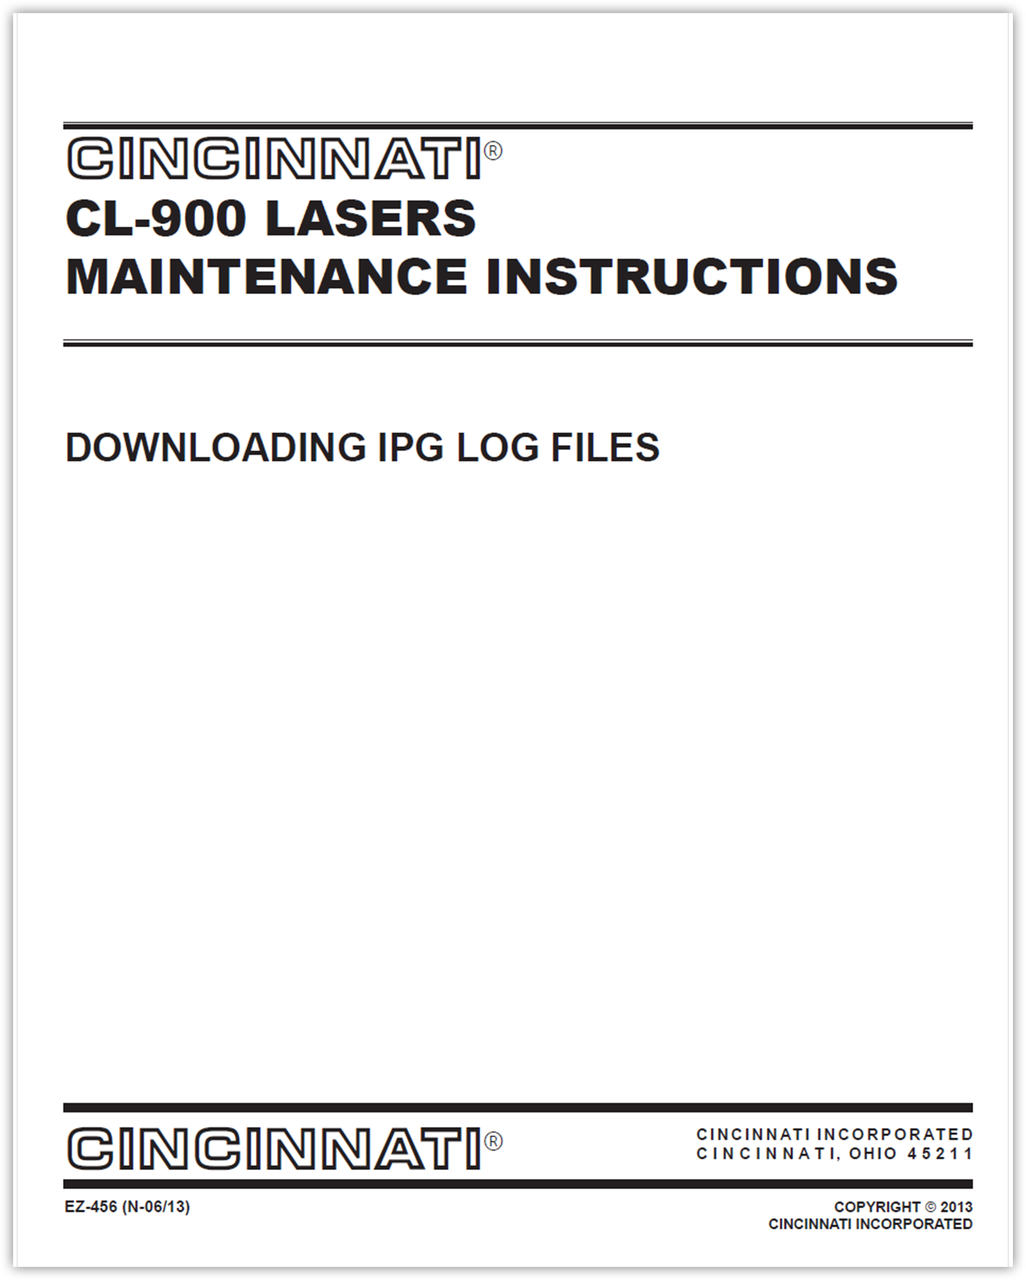 EZ-456 (N 0513) Downloading IPG Log Files via LaserNet